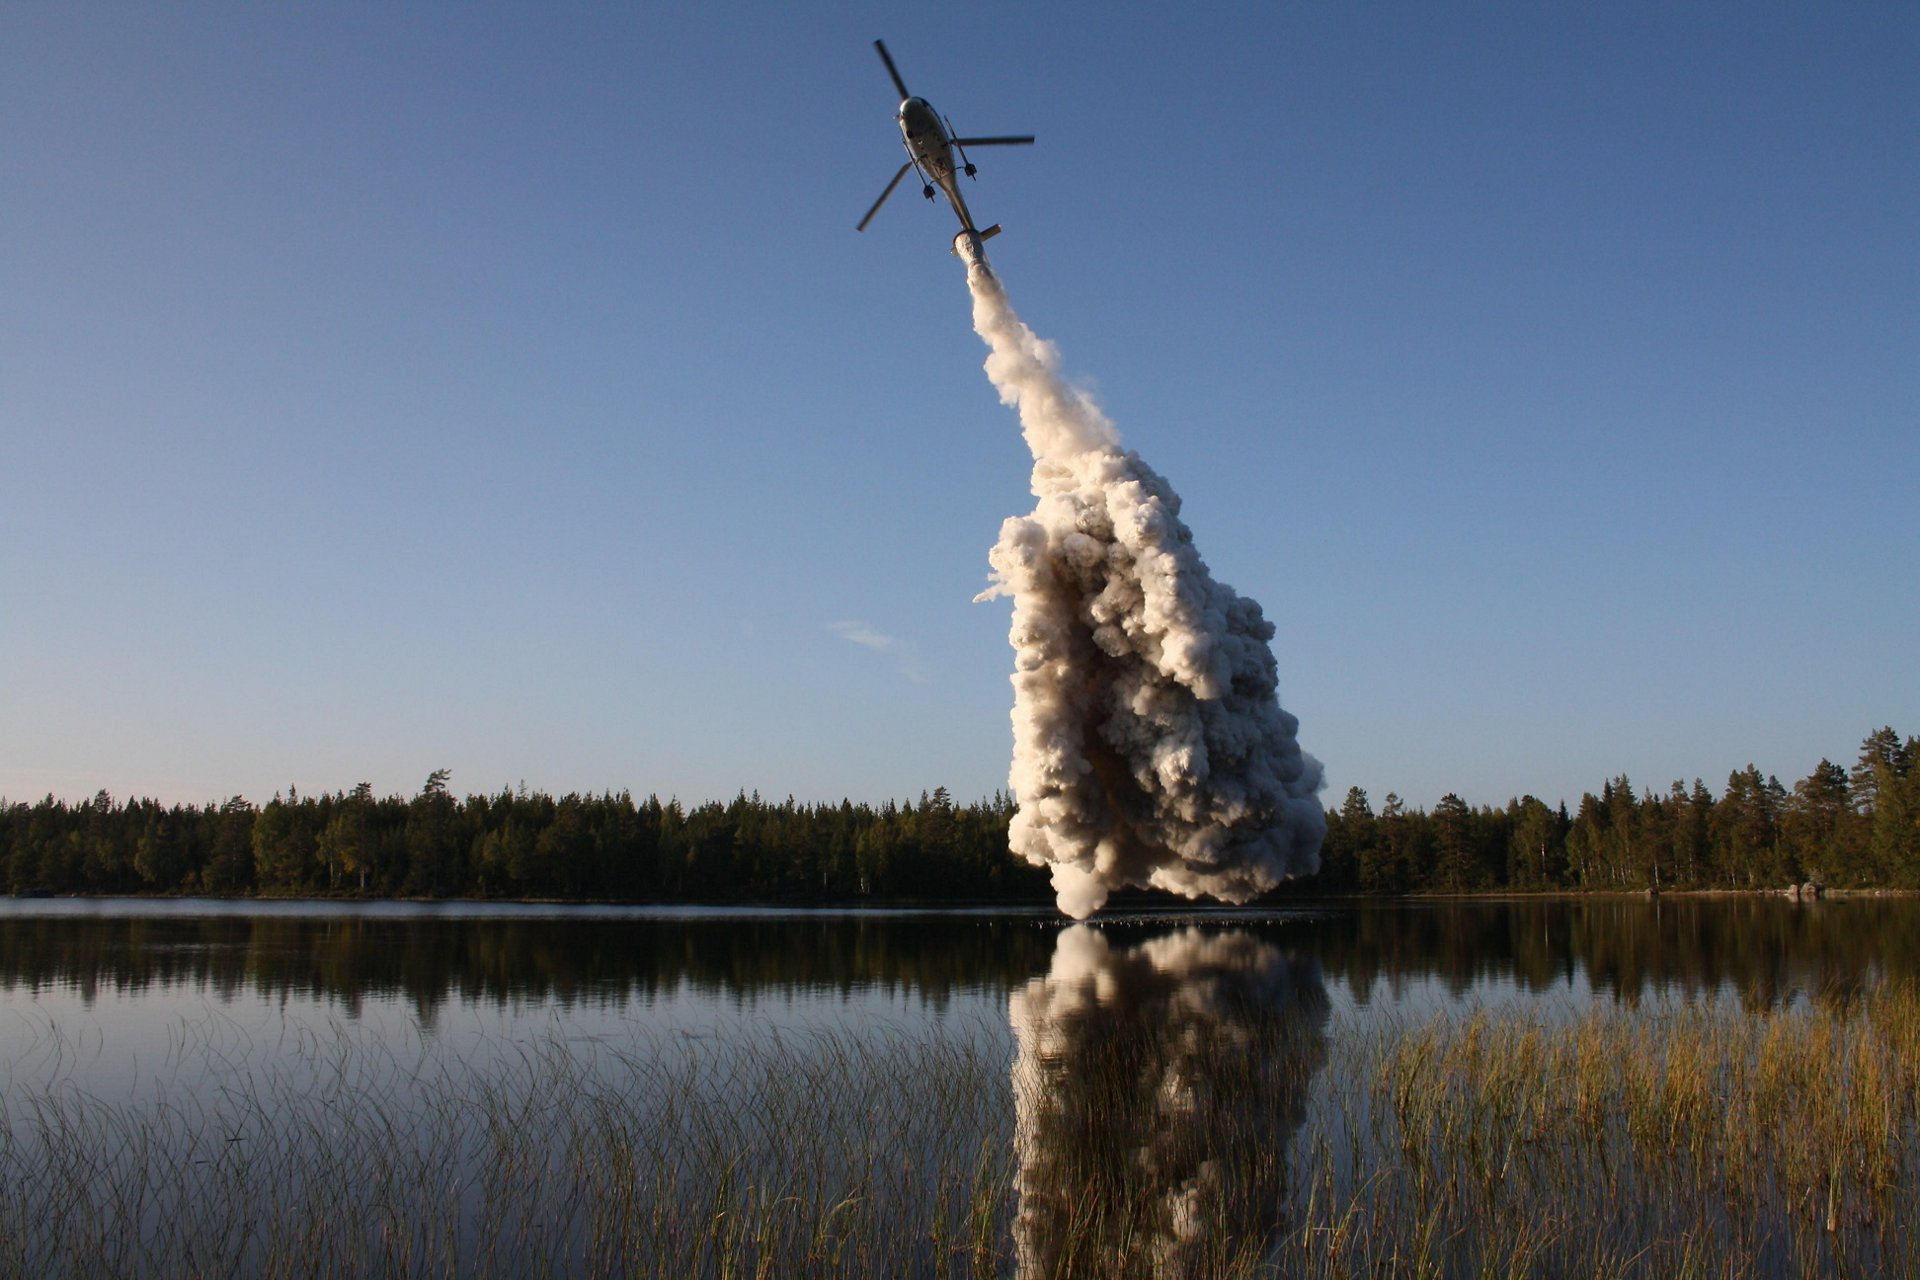 An H125 helicopter operated by Scandair sprays lime over a Scandinavian lake in order to lower freshwater pH levels.